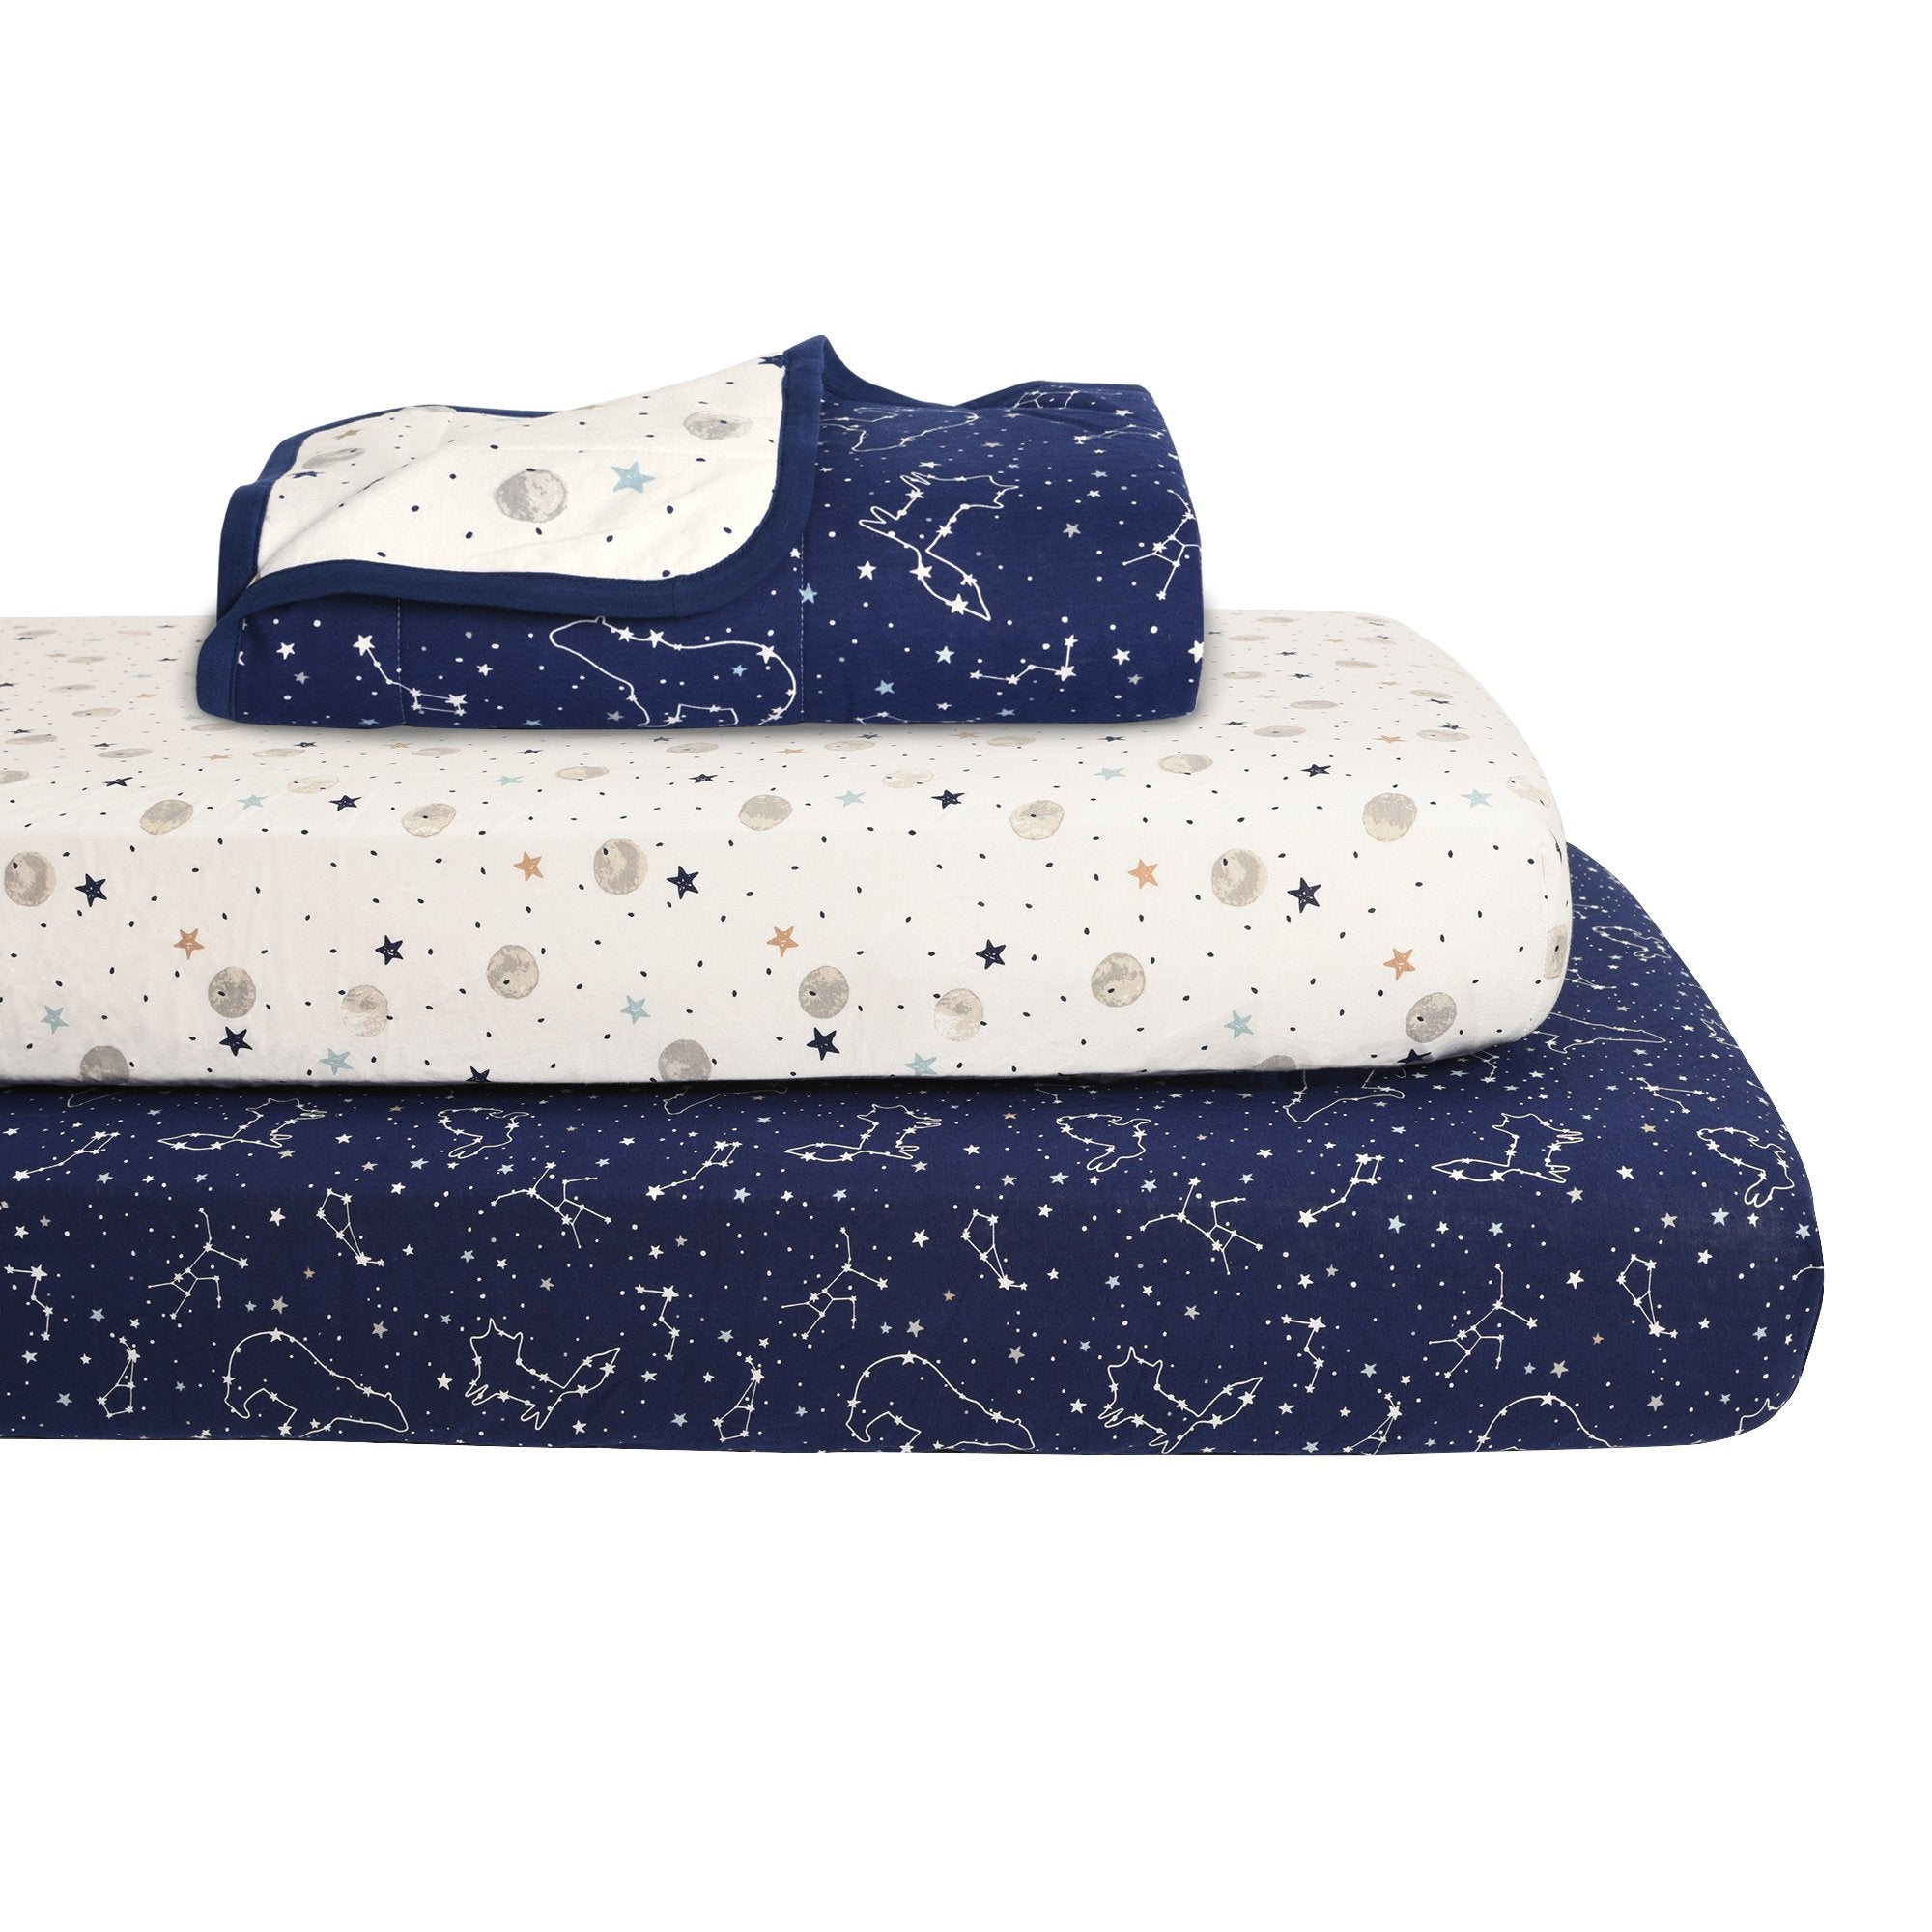 Baby's First by Nemcor 3-Piece Quilted Jersey Blanket and Fitted Sheet Crib Set, Starry Night